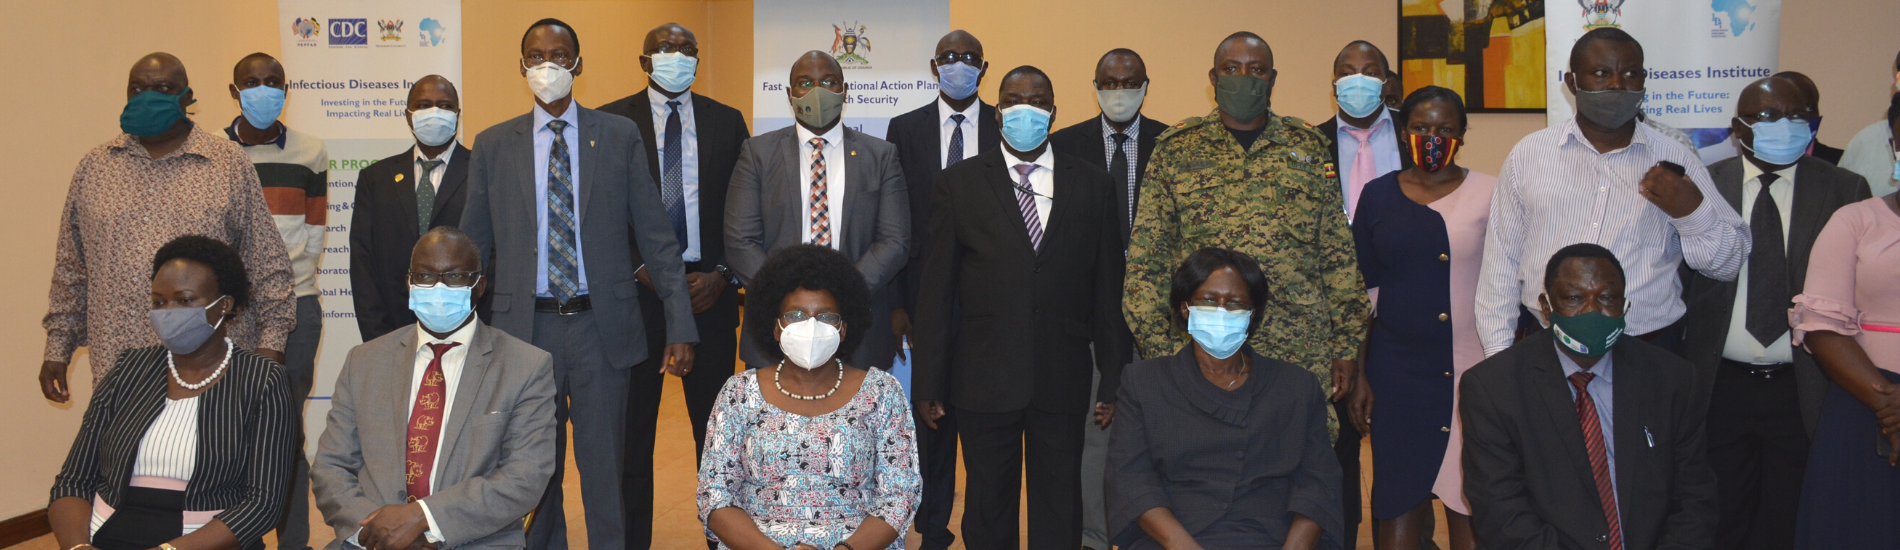 Dr Juliet Setumbwe, the director of Animal Resources at the Ministry of Agriculture Animal Industry and Fisheries has recognized the IDI for having hosted the One Health and environmental activities.